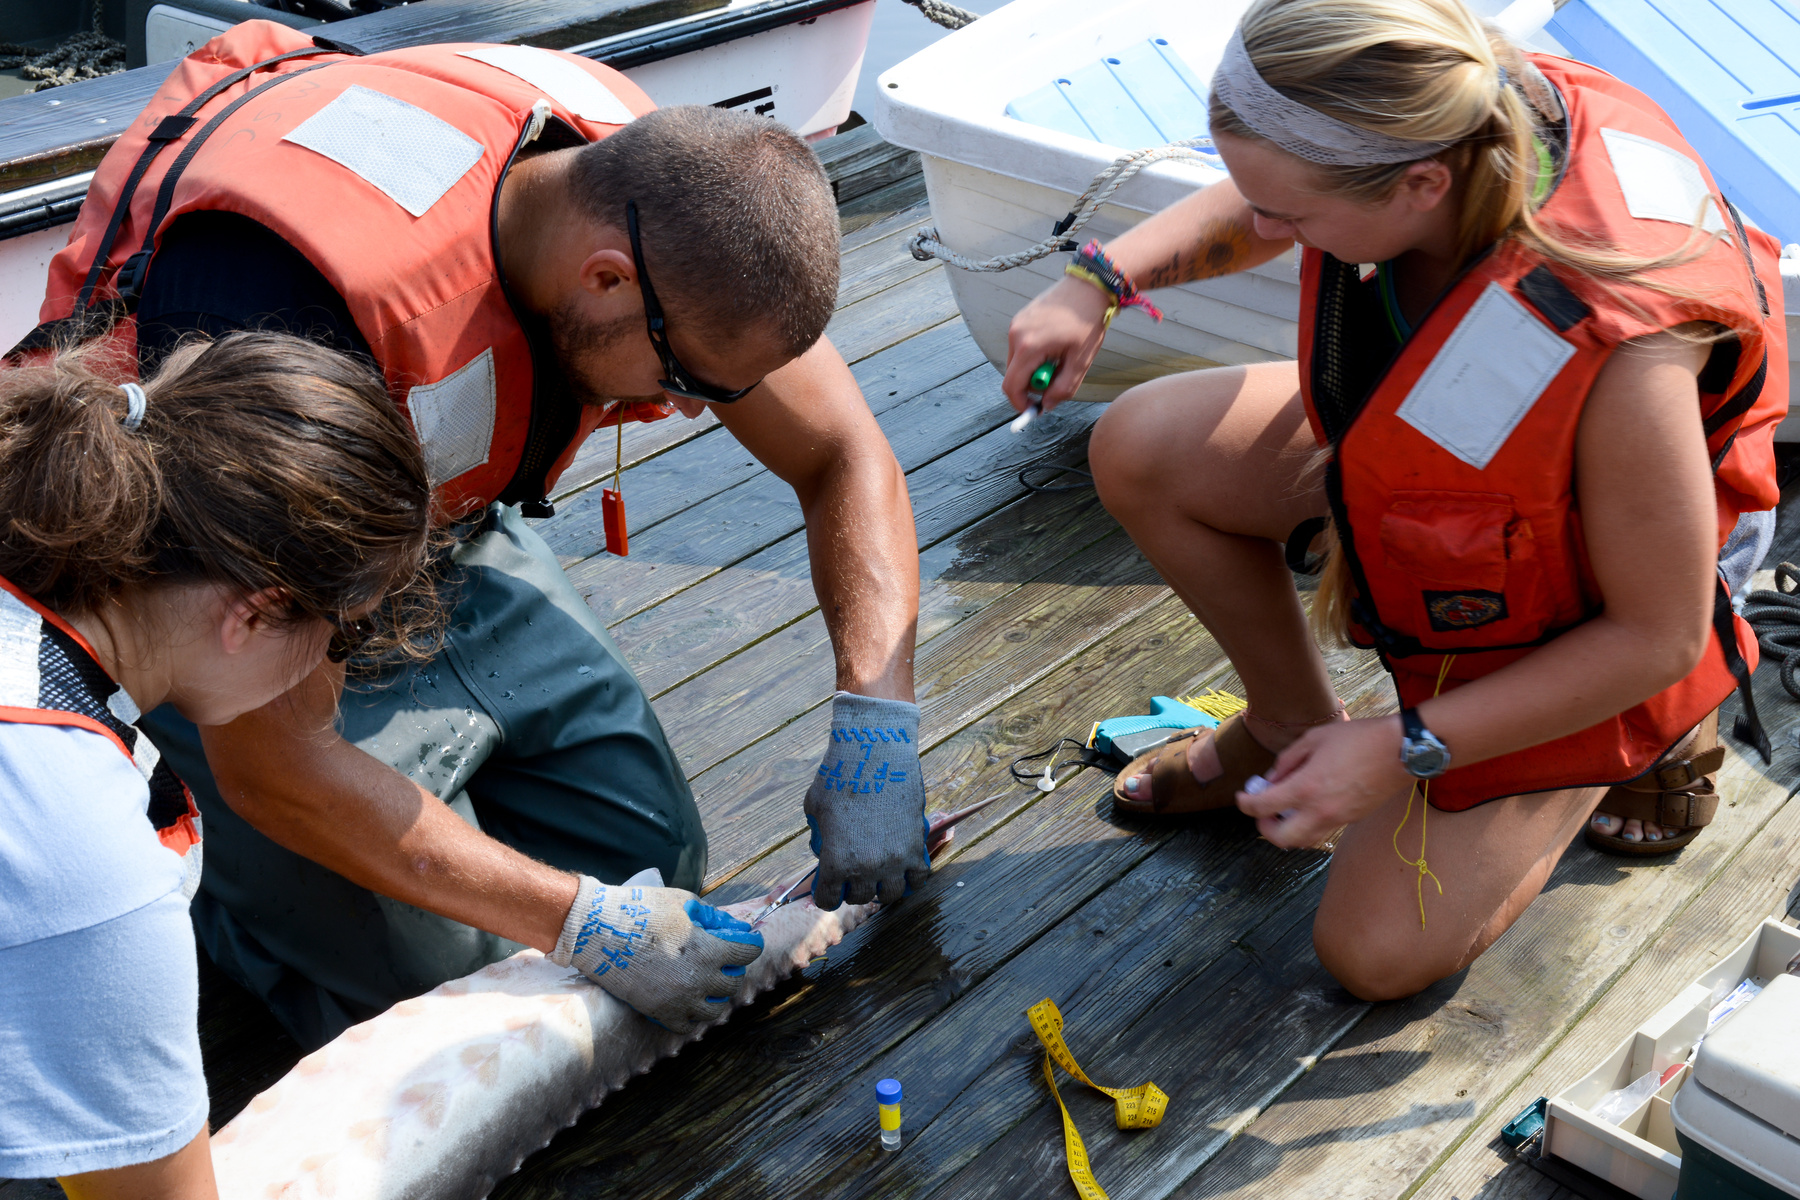 Three student researchers examine a large fish they hold against a dock